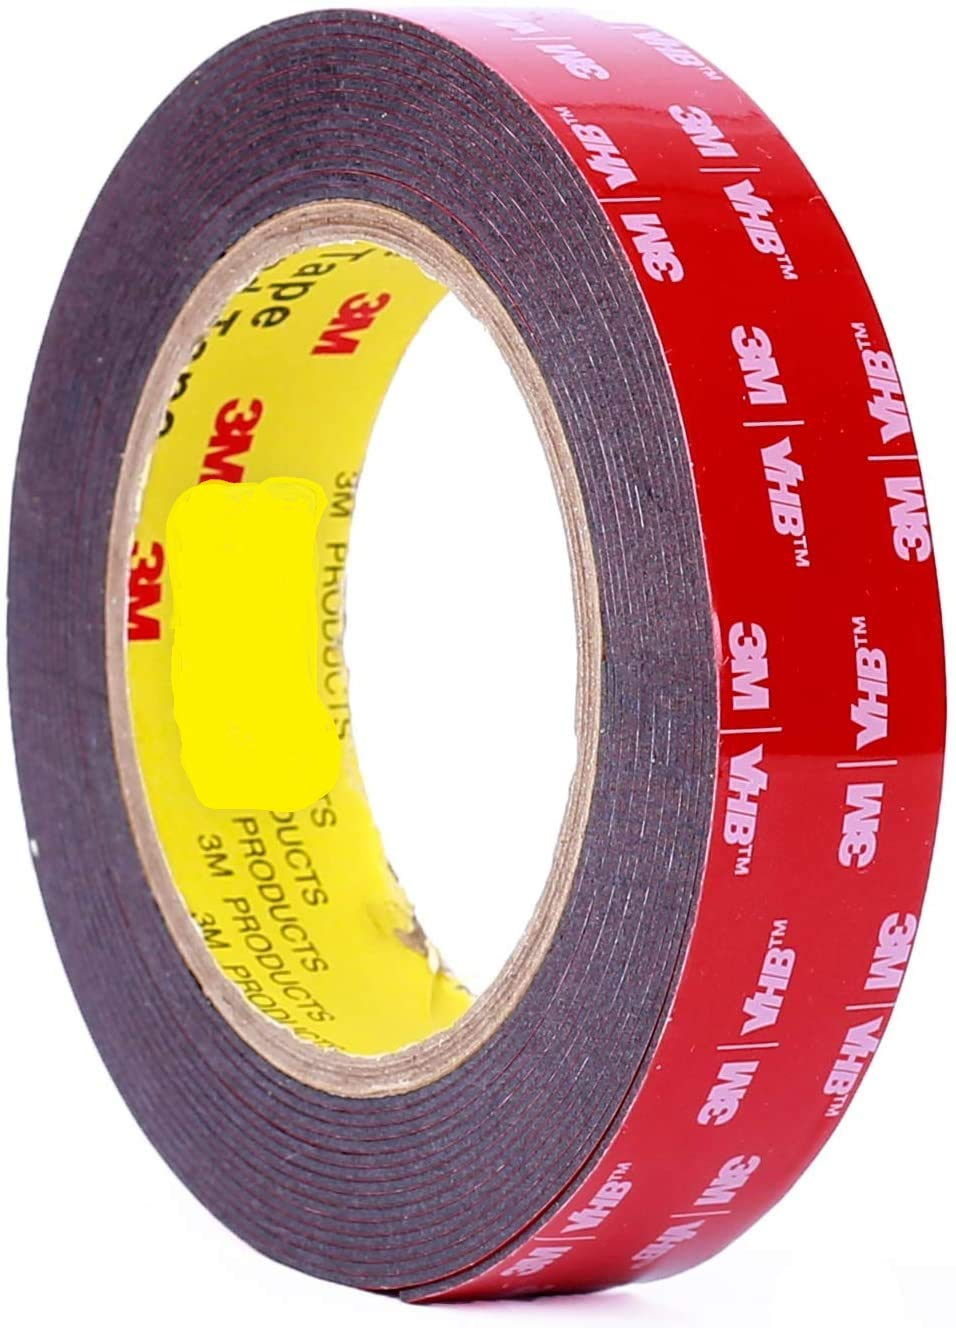 50 Pieces Super Strong Double-Sided Foam Tape Automotive Mounting Tape DIY